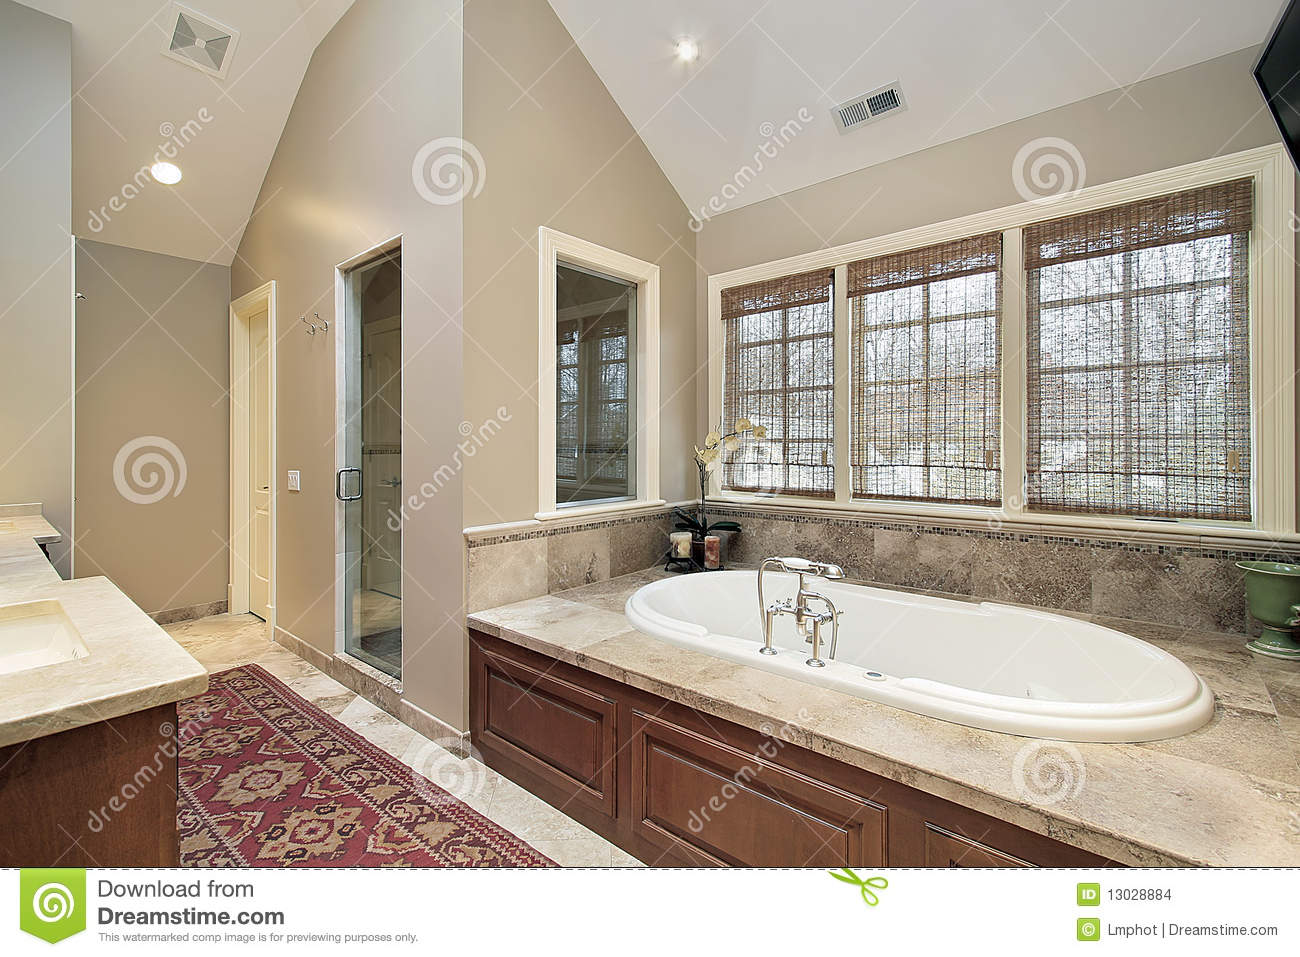 Master Bath With Wood Paneled Tub Stock Photo - Image of master ...